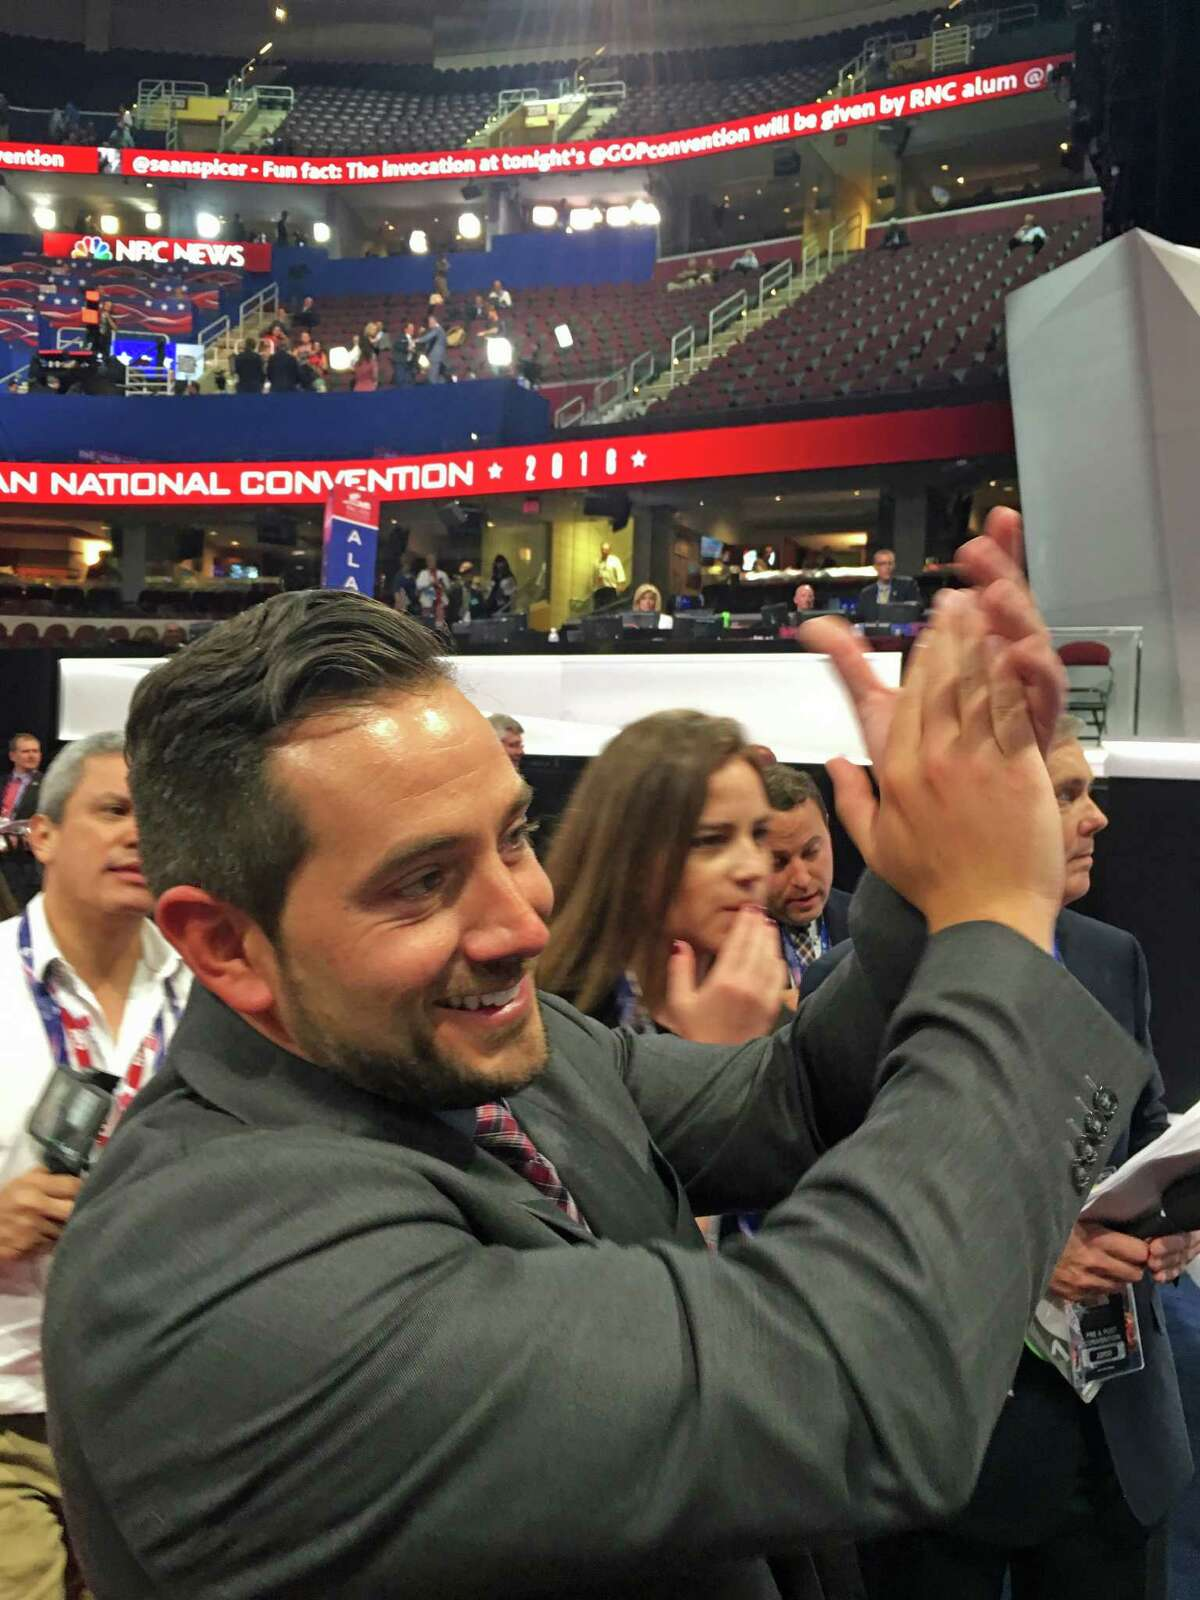 State GOP Chairman J.R. Romano applauds as former Texas Gov. Rick Perry addresses delegates at the Republican National Convention in Cleveland on Monday, July 18, 2016.